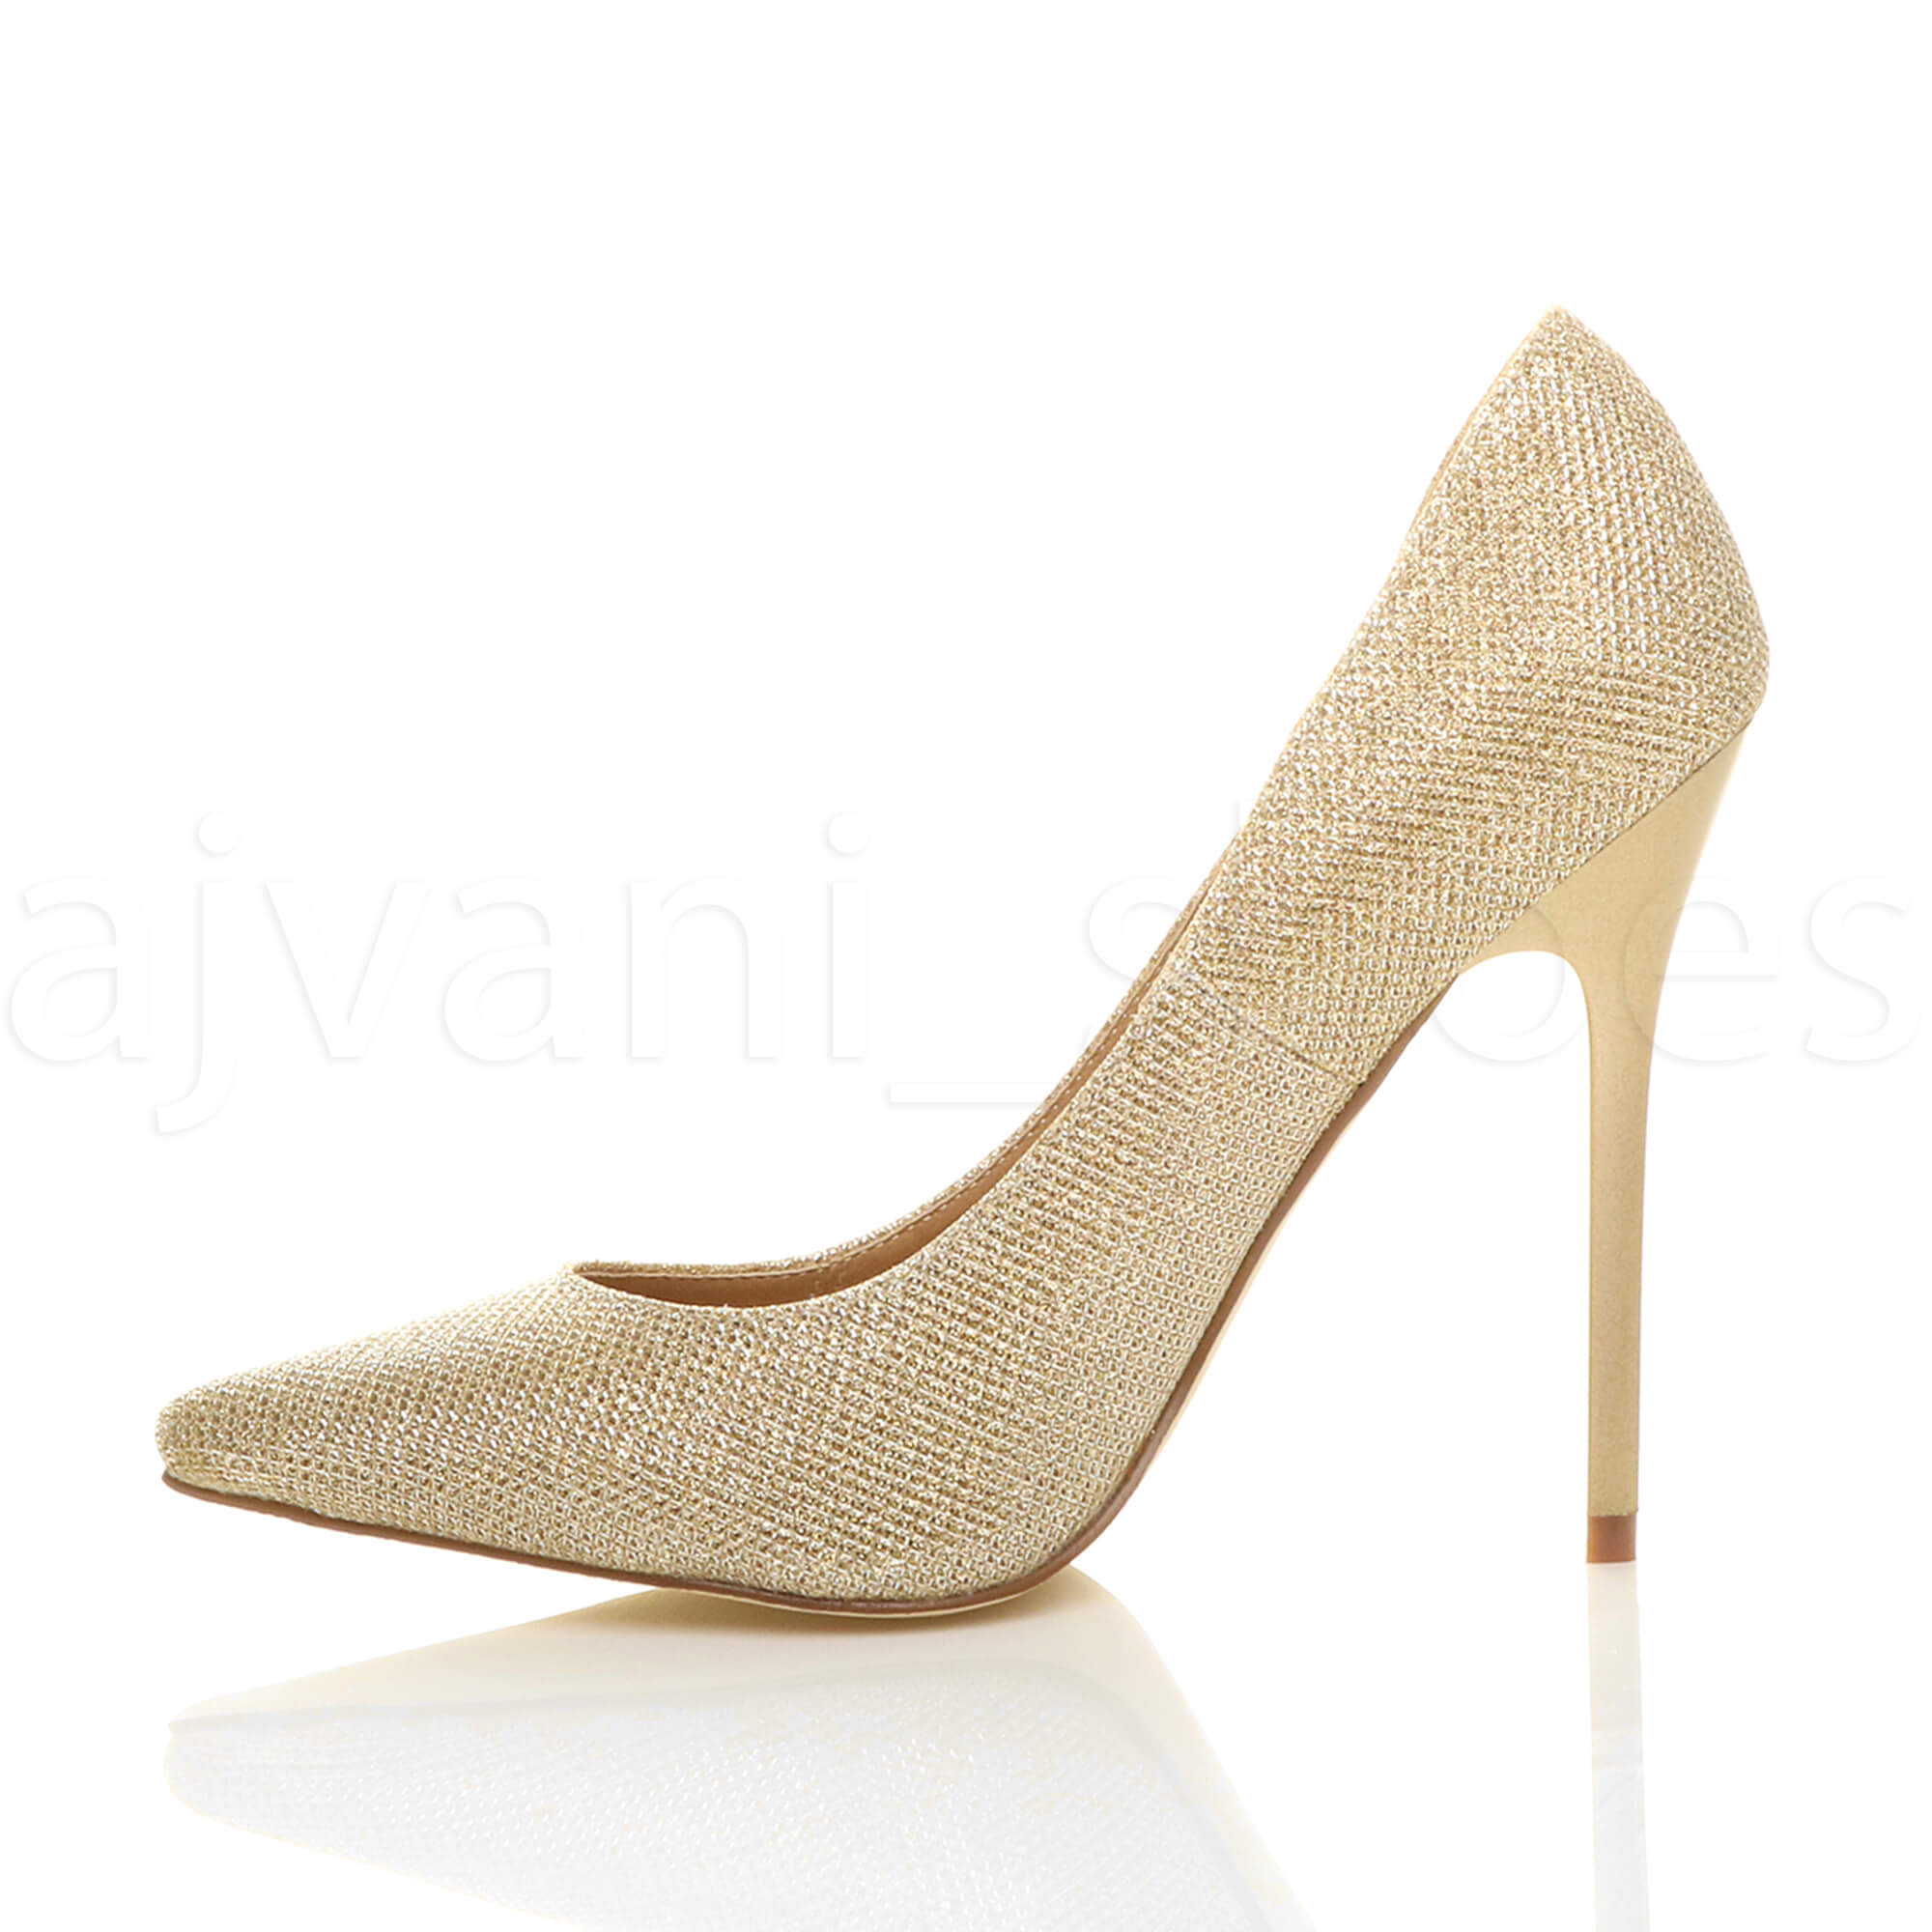 WOMENS-LADIES-HIGH-HEEL-POINTED-CONTRAST-COURT-SMART-PARTY-WORK-SHOES-PUMPS-SIZE thumbnail 74